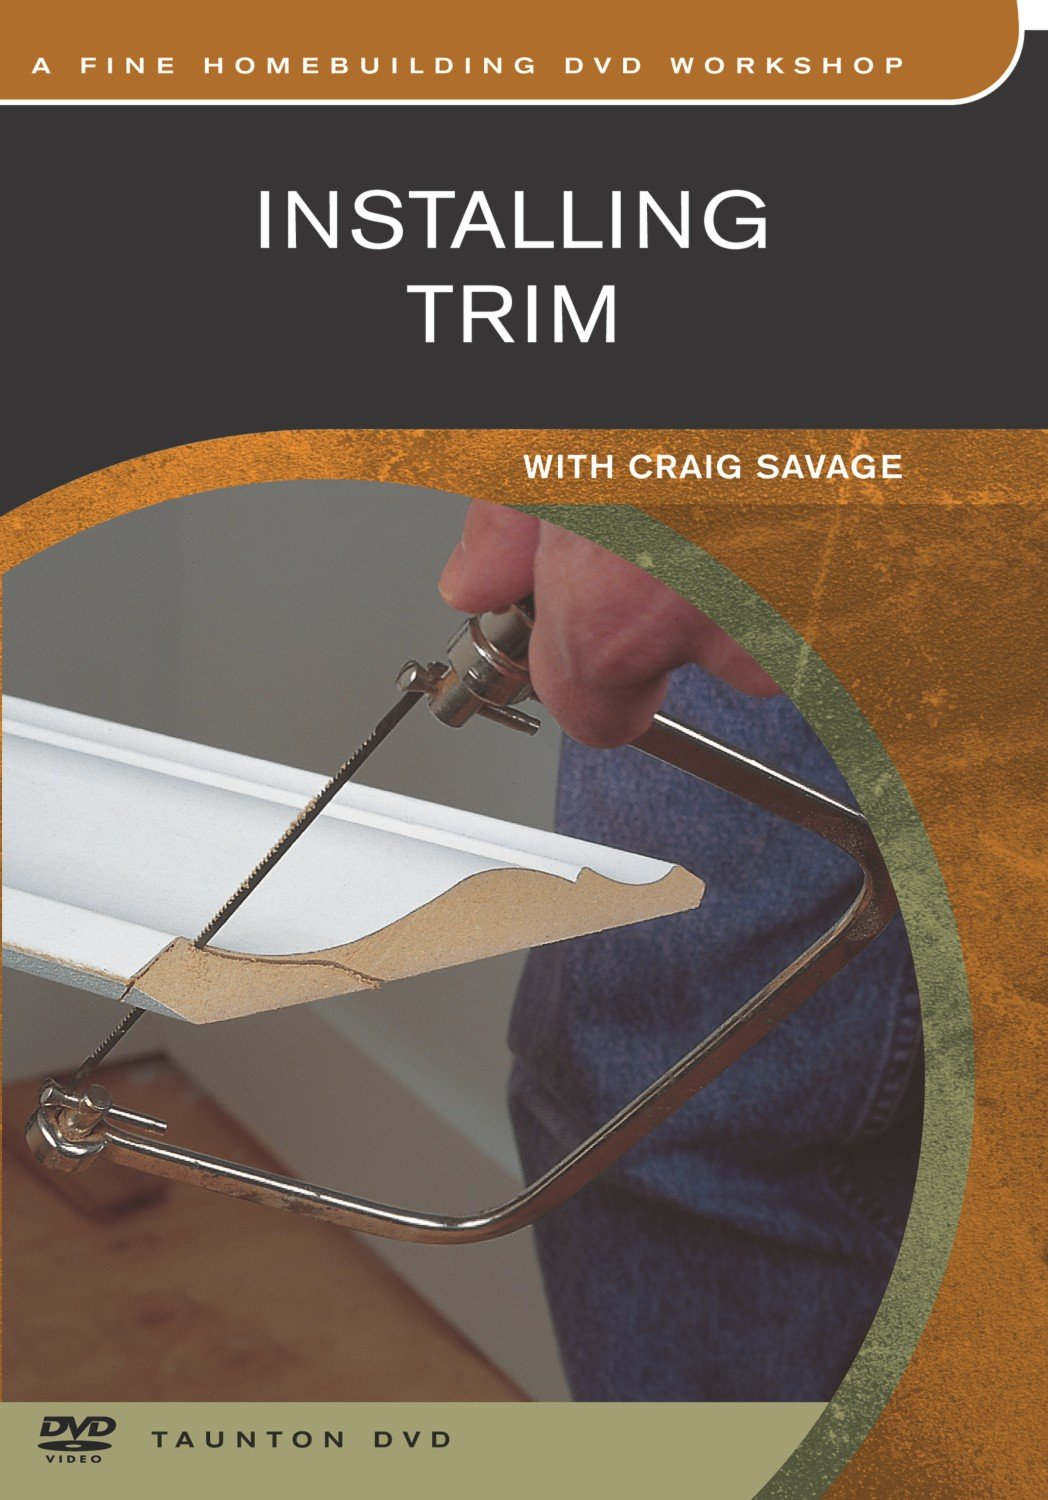 Installing kitchen cabinets and countertops with tom law - Amazon Com Installing Trim With Craig Savage Craig Savage Movies Tv